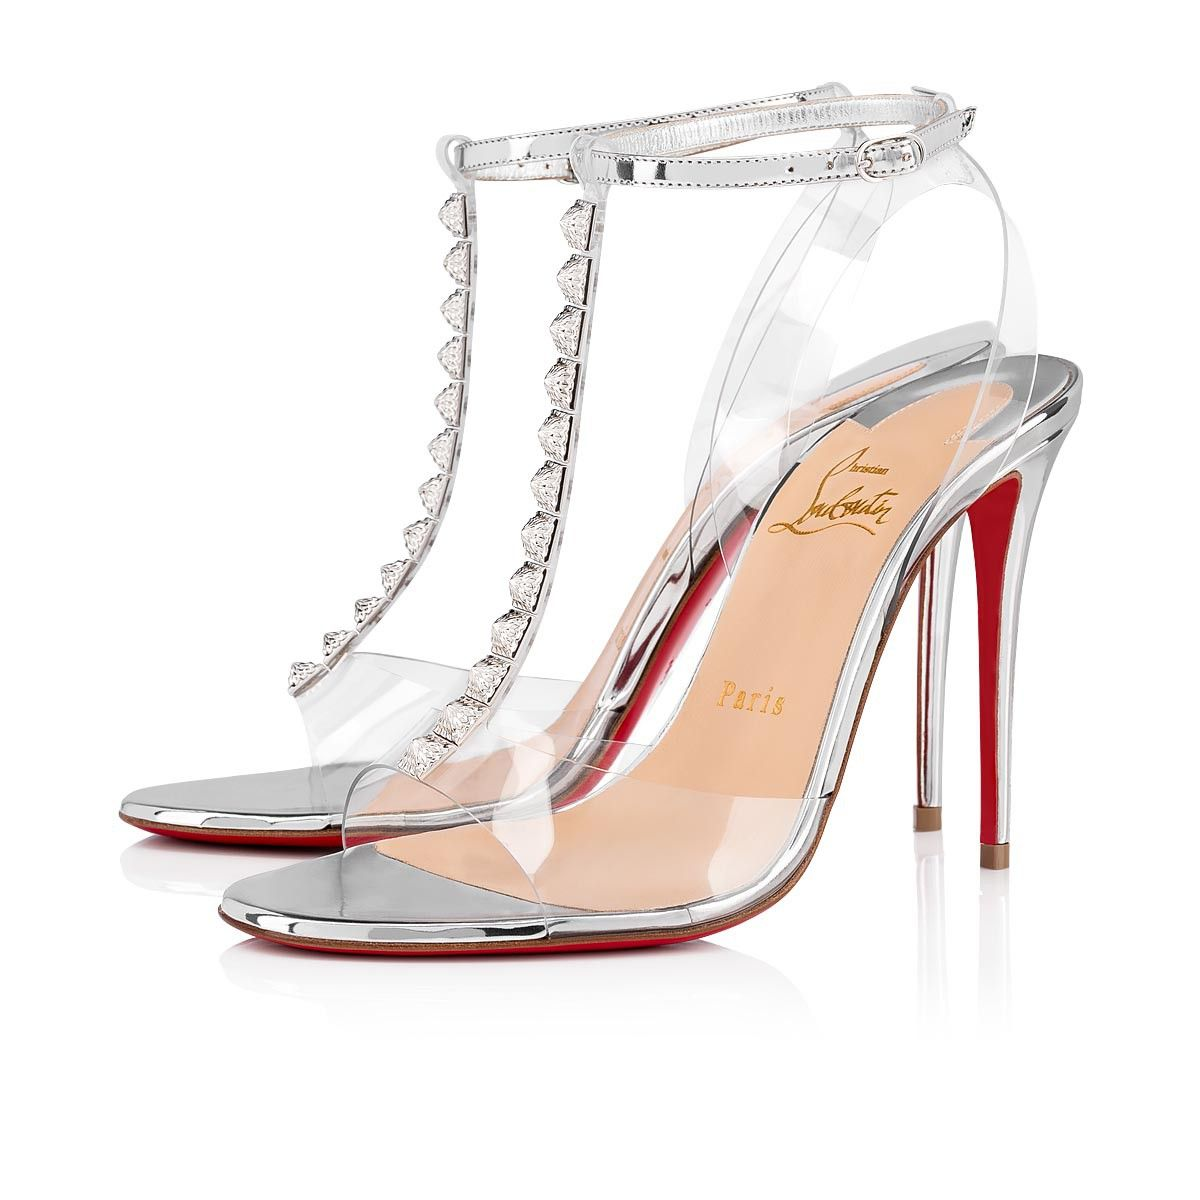 Designed Like A Jewel The Jamais Assez Sandal Is Adorned With Pvc Cutouts Attaching Strips On The Upper That House Silver Spikes Made From Silv With Images Stiletto Heels